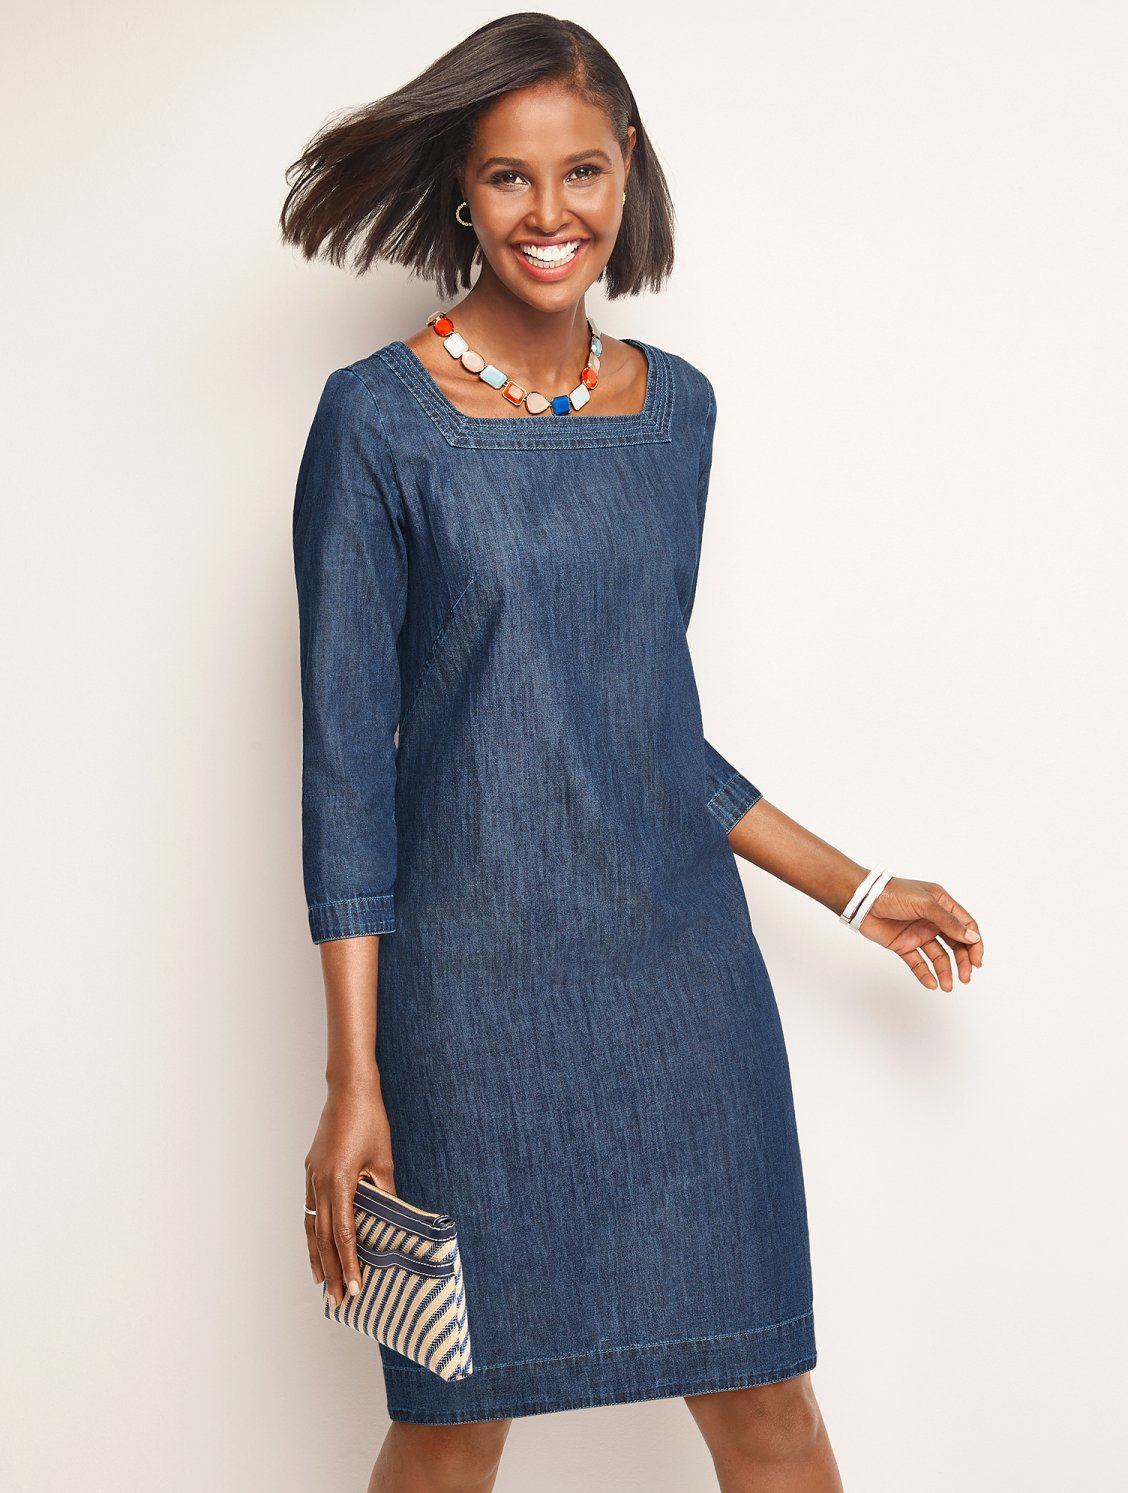 a15da2d80f5 Casual elegance at its finest. Our new denim shift features slimming  vertical lines and a